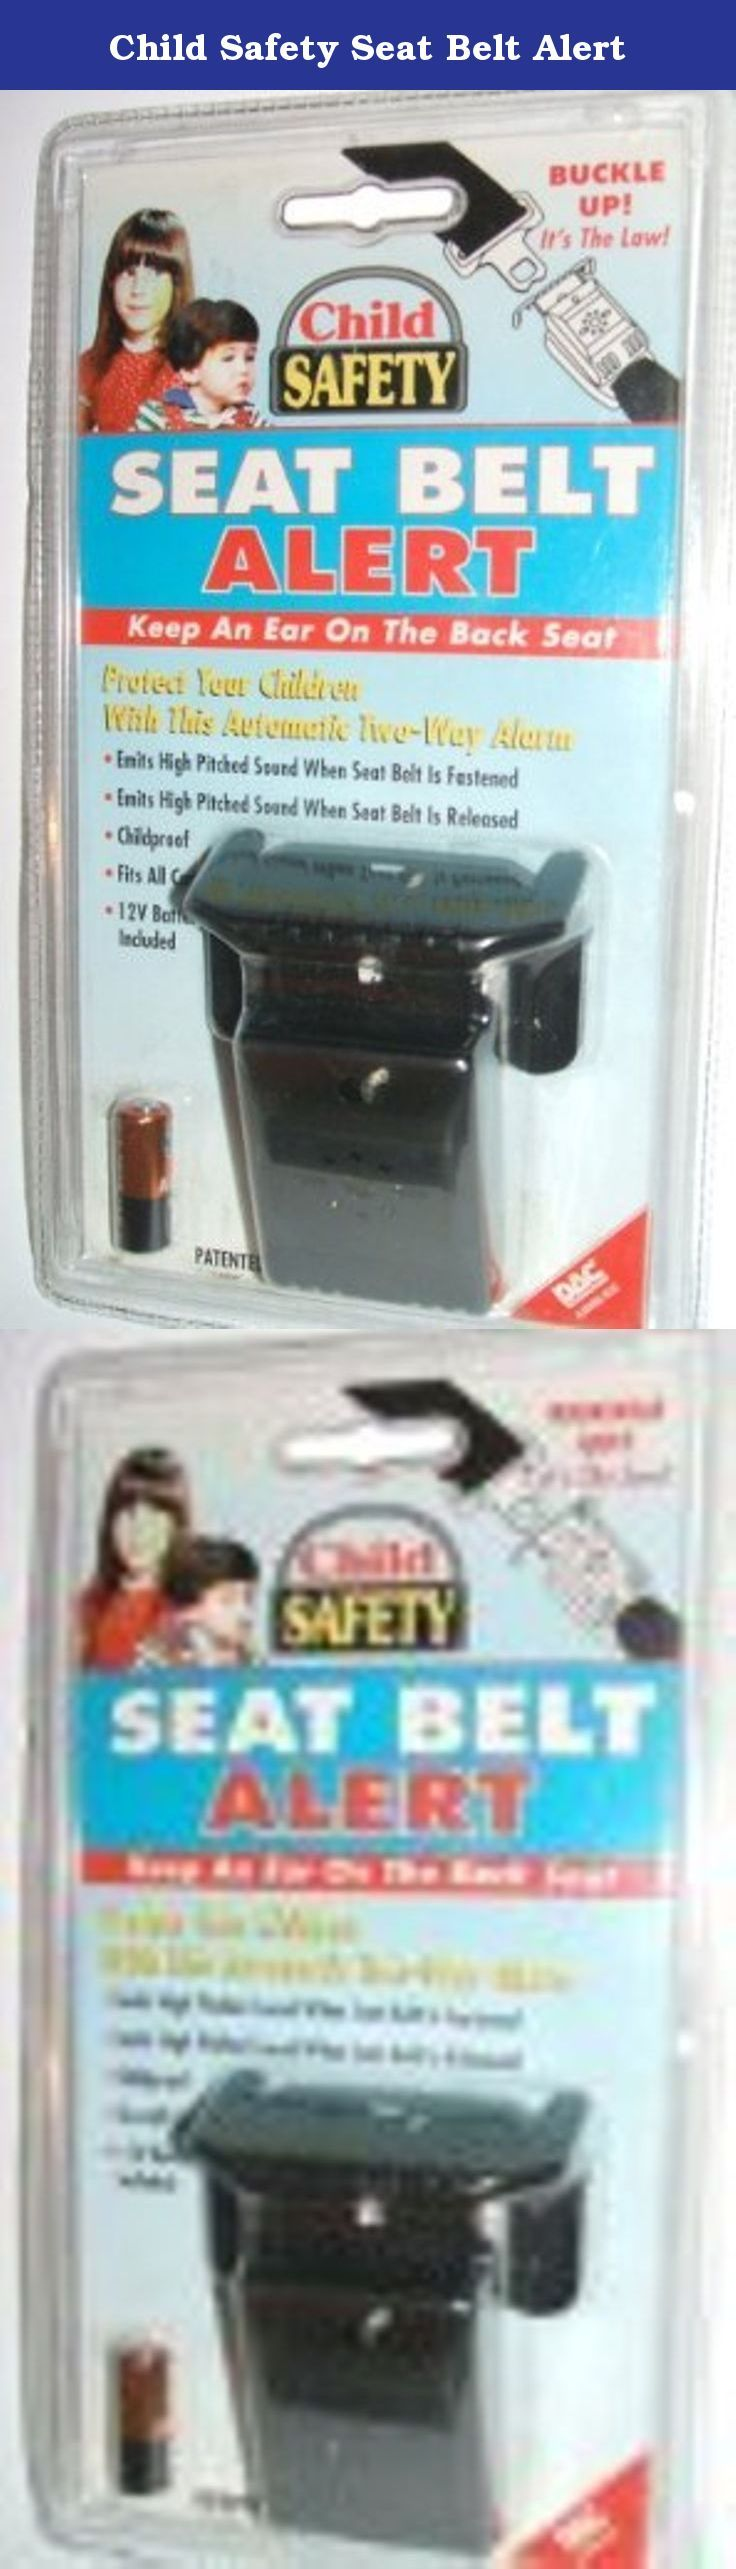 Child Safety Seat Belt Alert. New Child Safety Seat Belt Alert. Keep an ear on the back seat. Protect Your Children with this Automatic Two-Way Alarm.